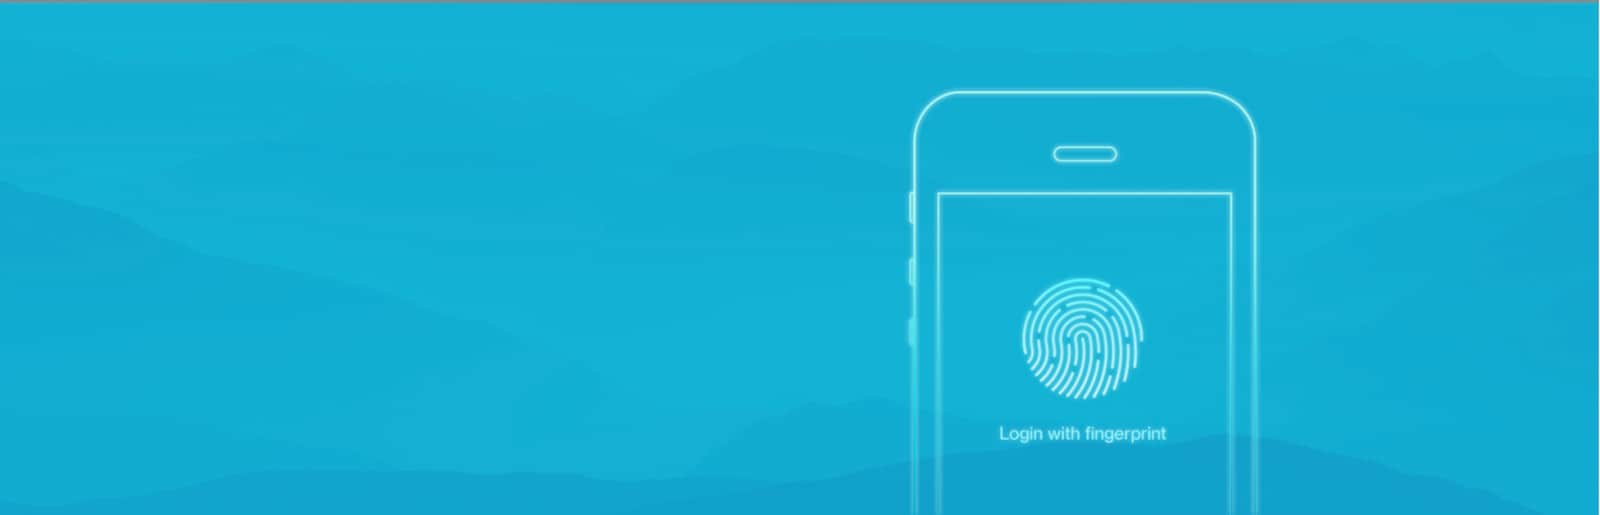 Fingerprint-touch-id-login